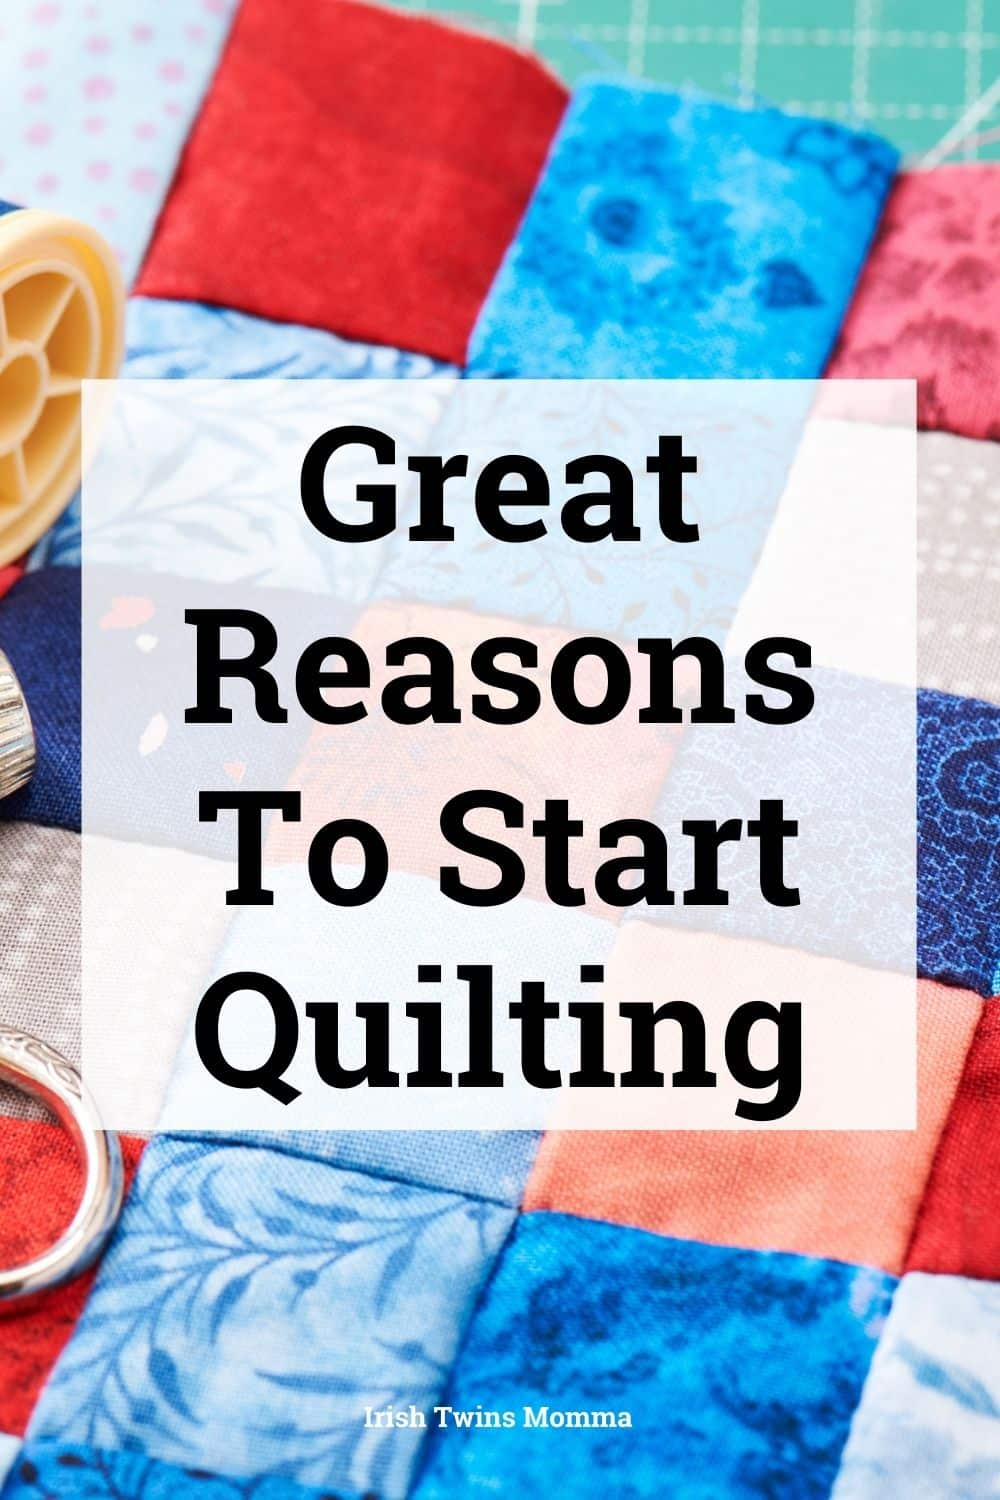 Great Reasons To Start Quilting